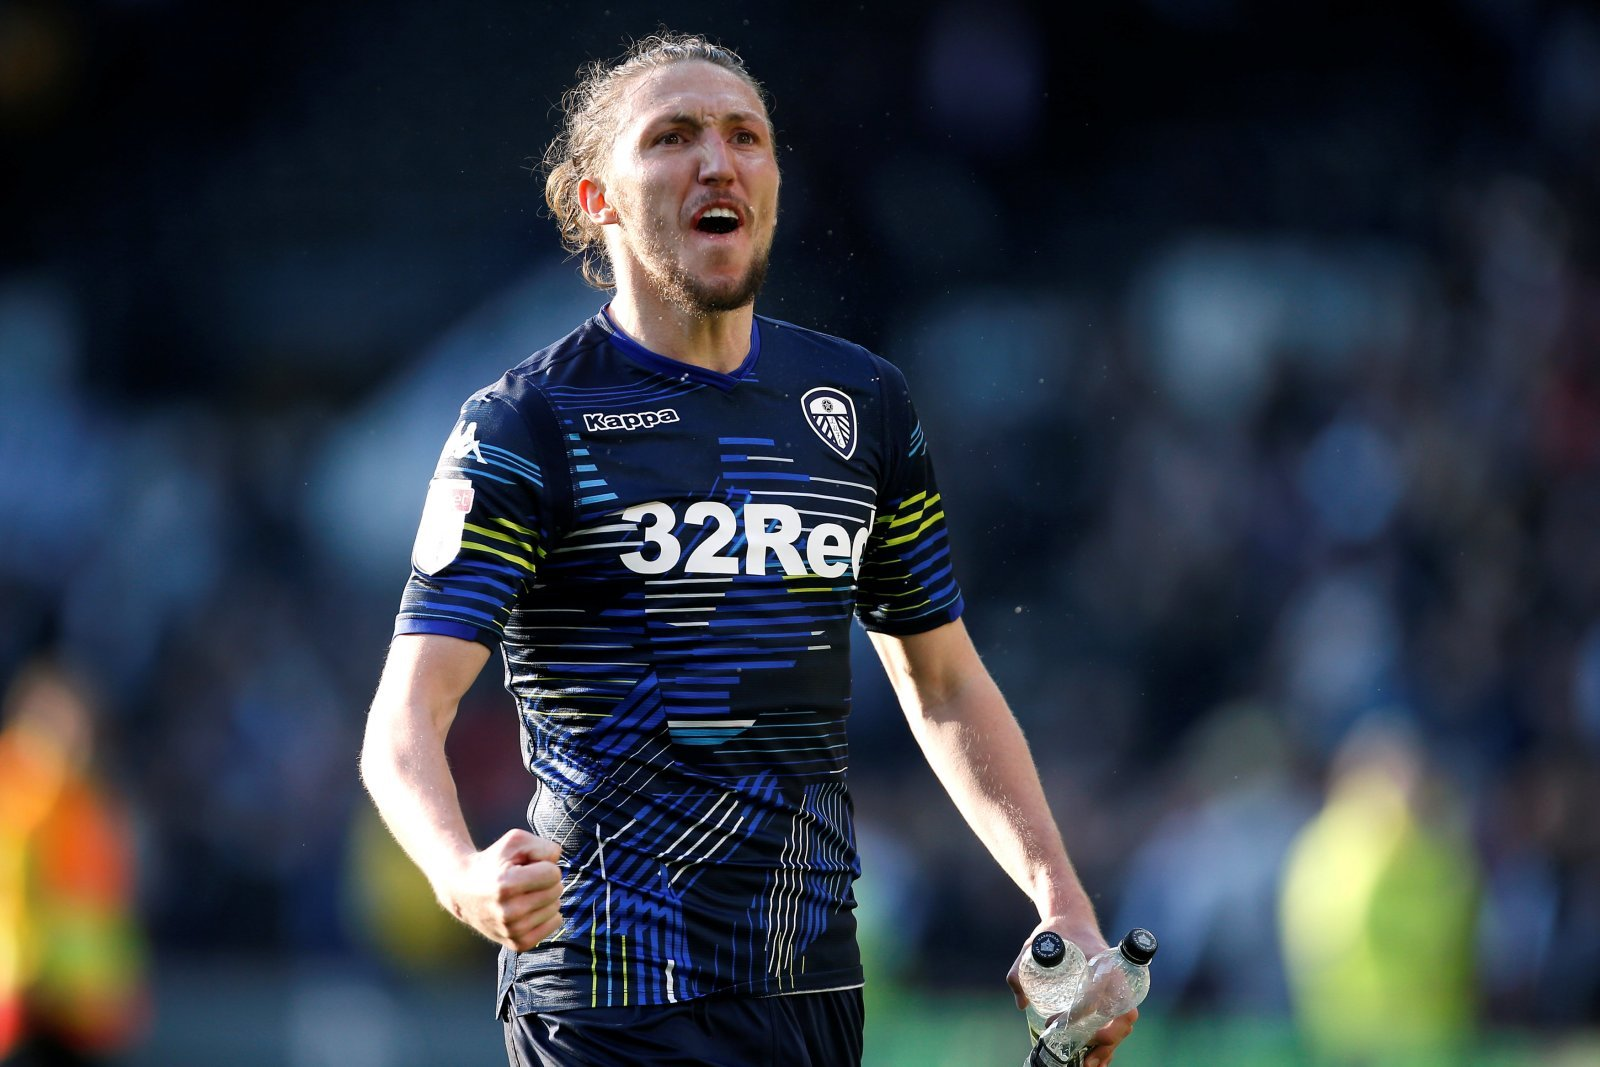 Leeds United's Luke Ayling celebrates after the Play-Off Semi-Final First Leg v Derby County